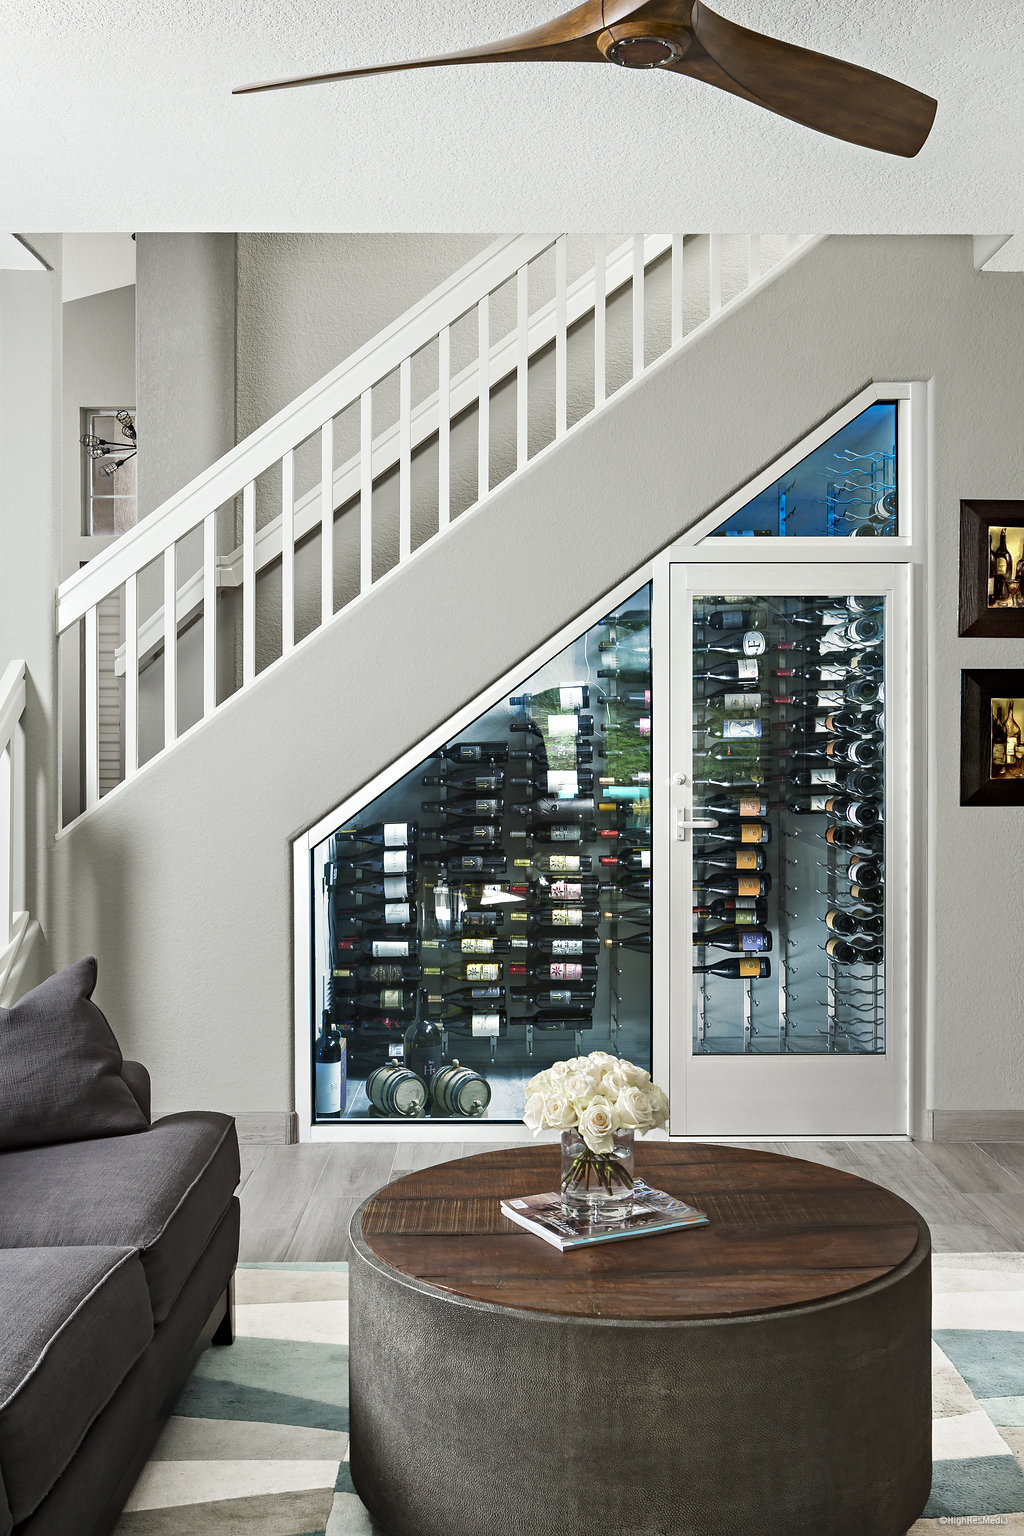 Lighting Basement Washroom Stairs: Creative Ways To Utilize Space To Install A Wine Cellar